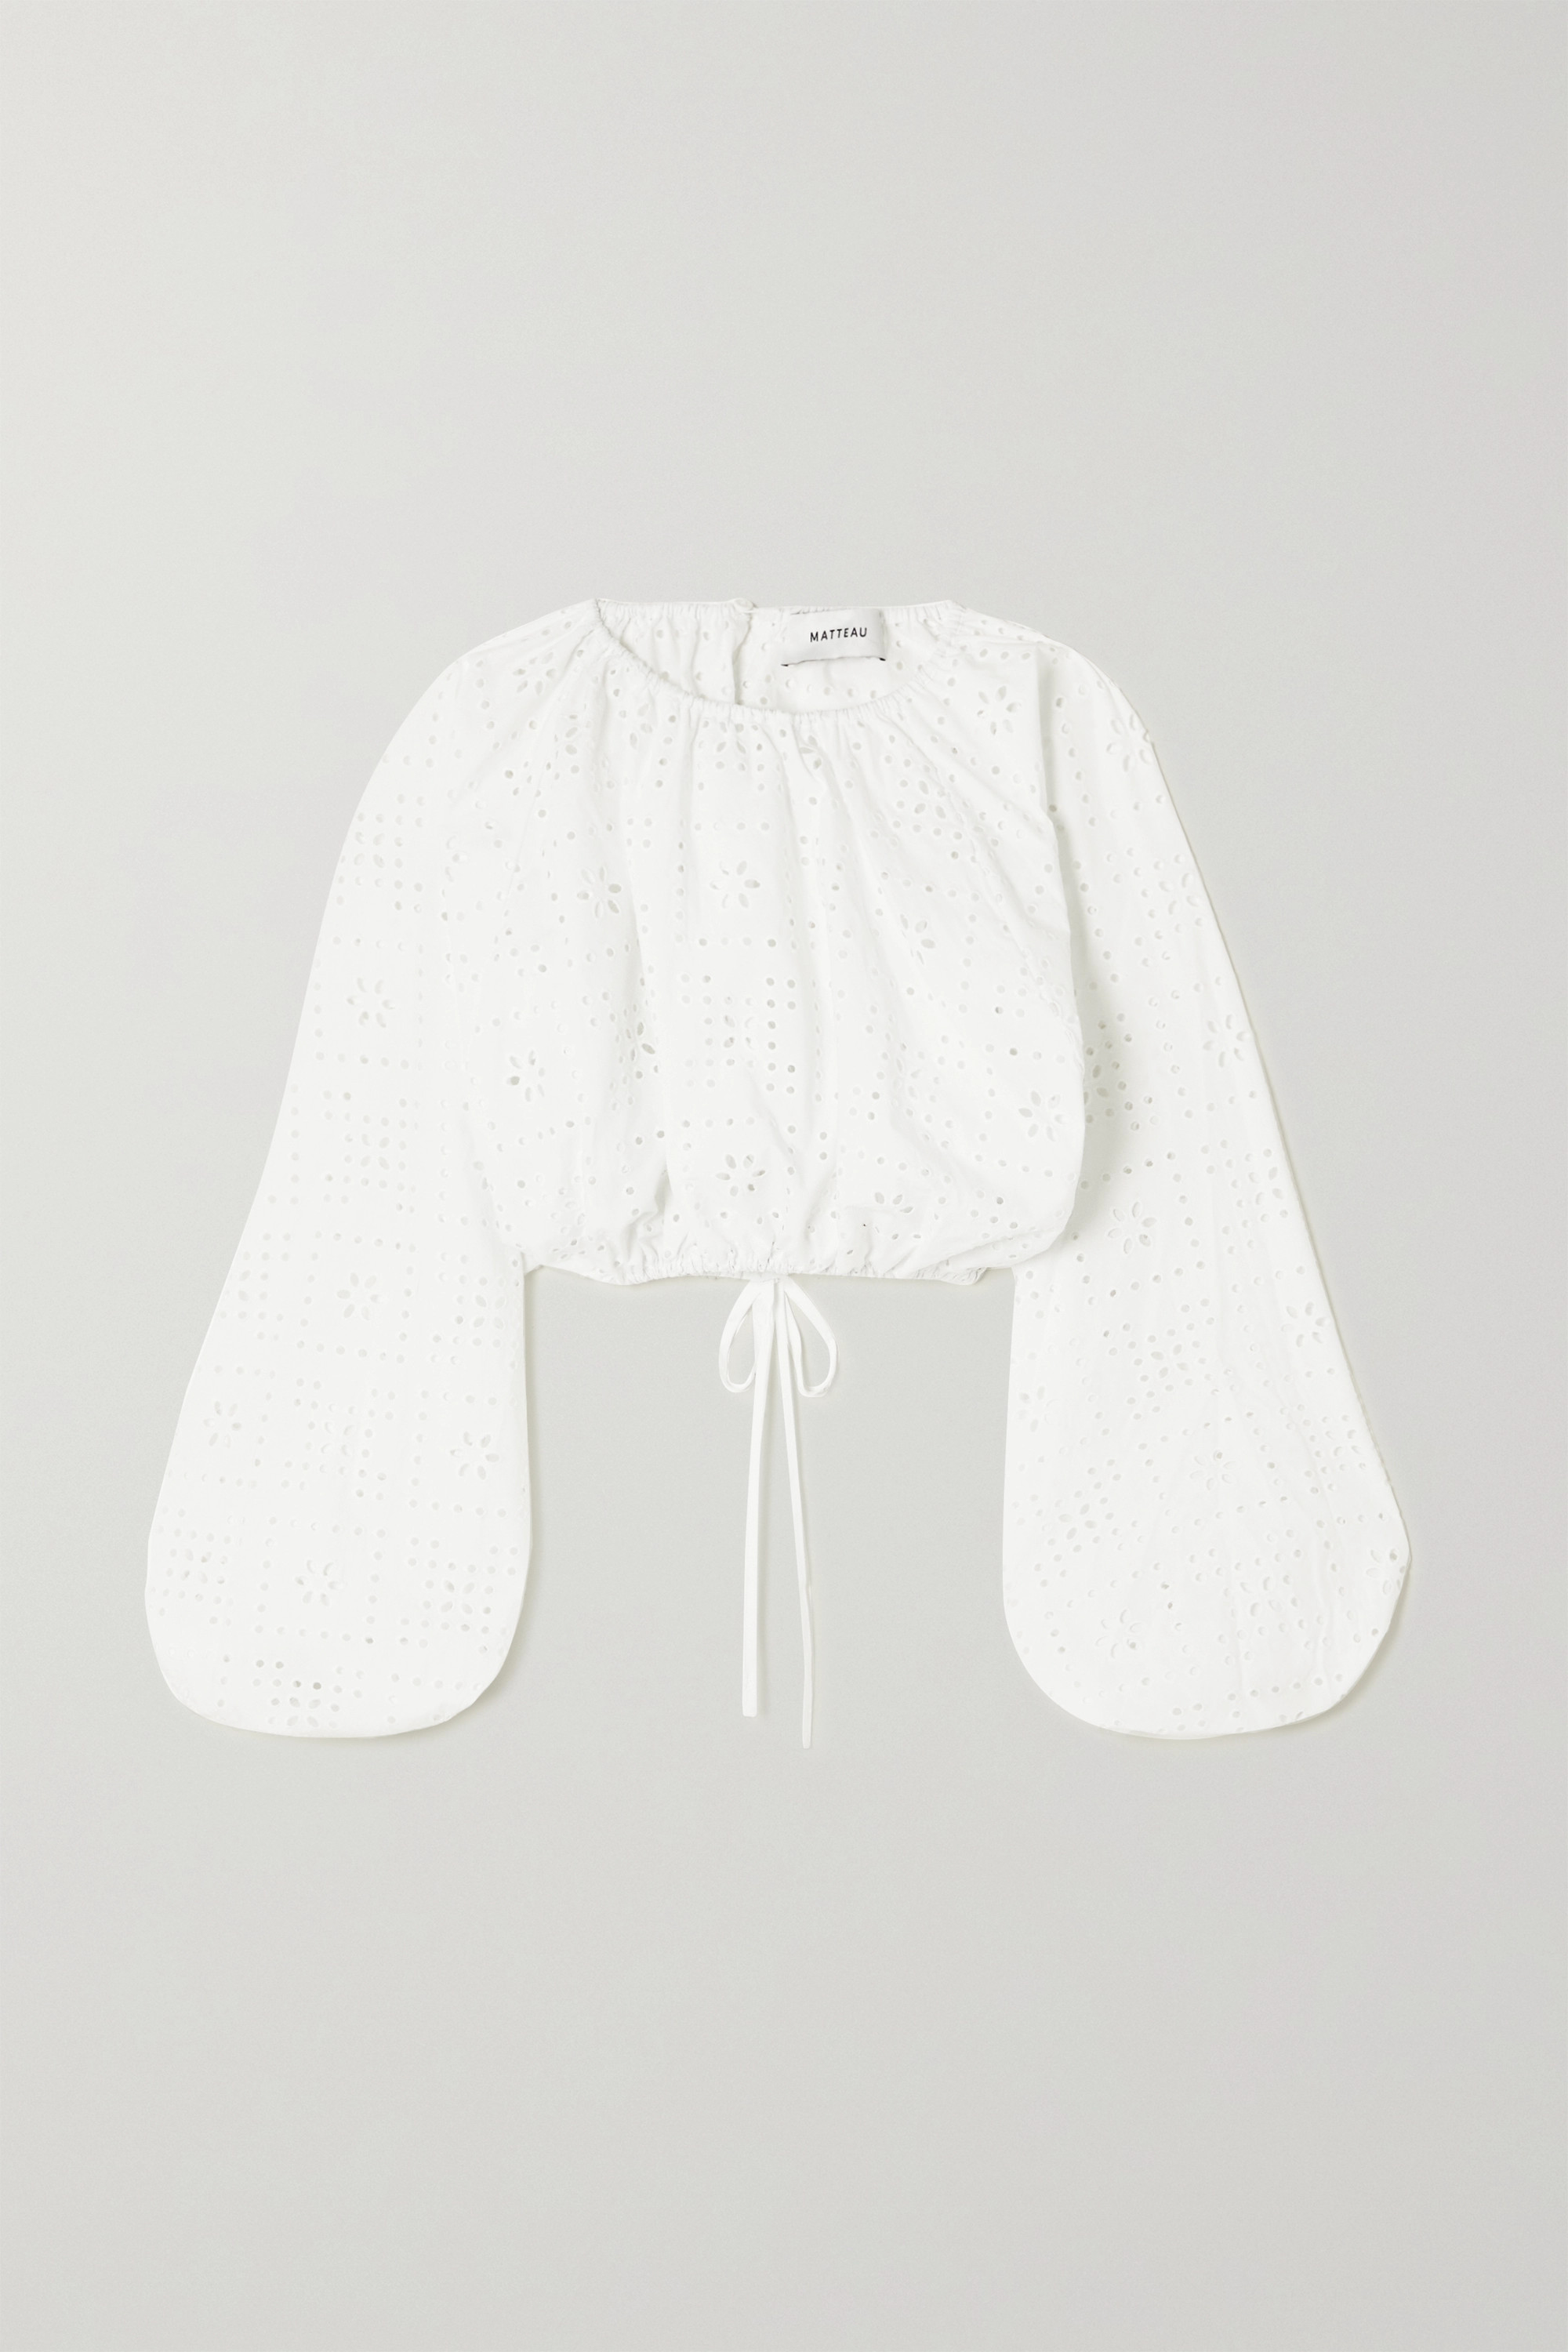 Matteau + NET SUSTAIN cropped broderie anglaise organic cotton-poplin top